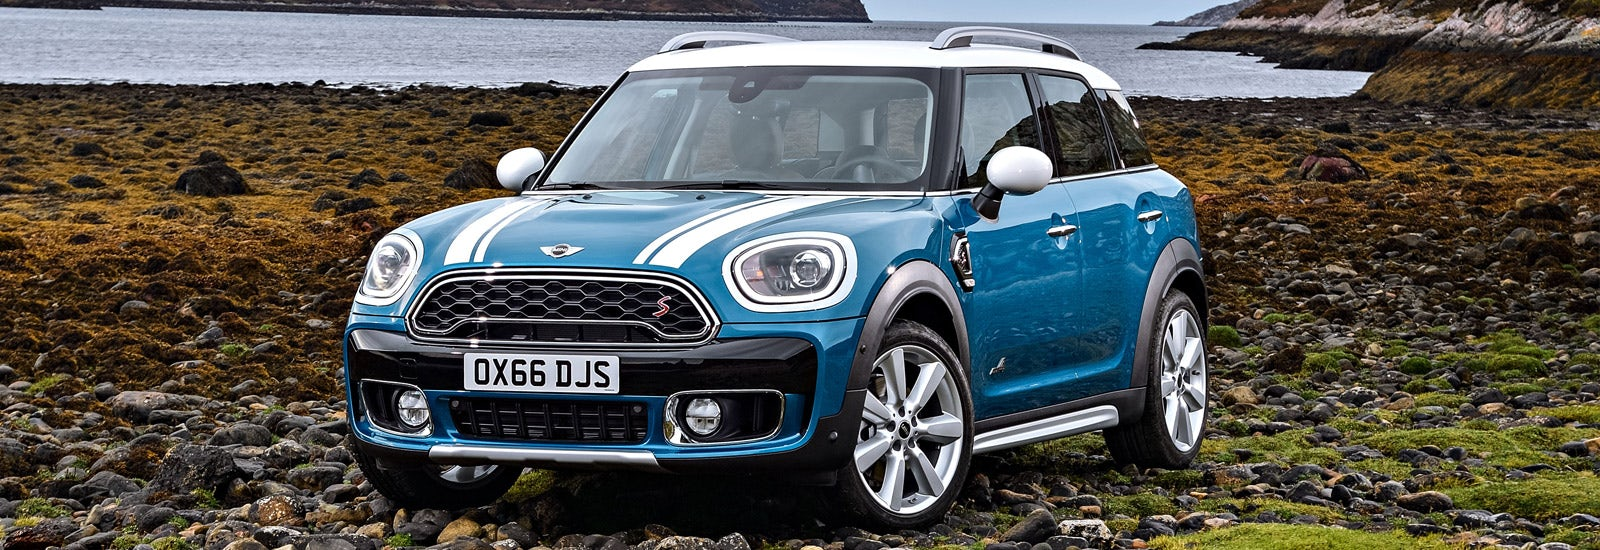 2017 mini countryman price specs and release date carwow. Black Bedroom Furniture Sets. Home Design Ideas